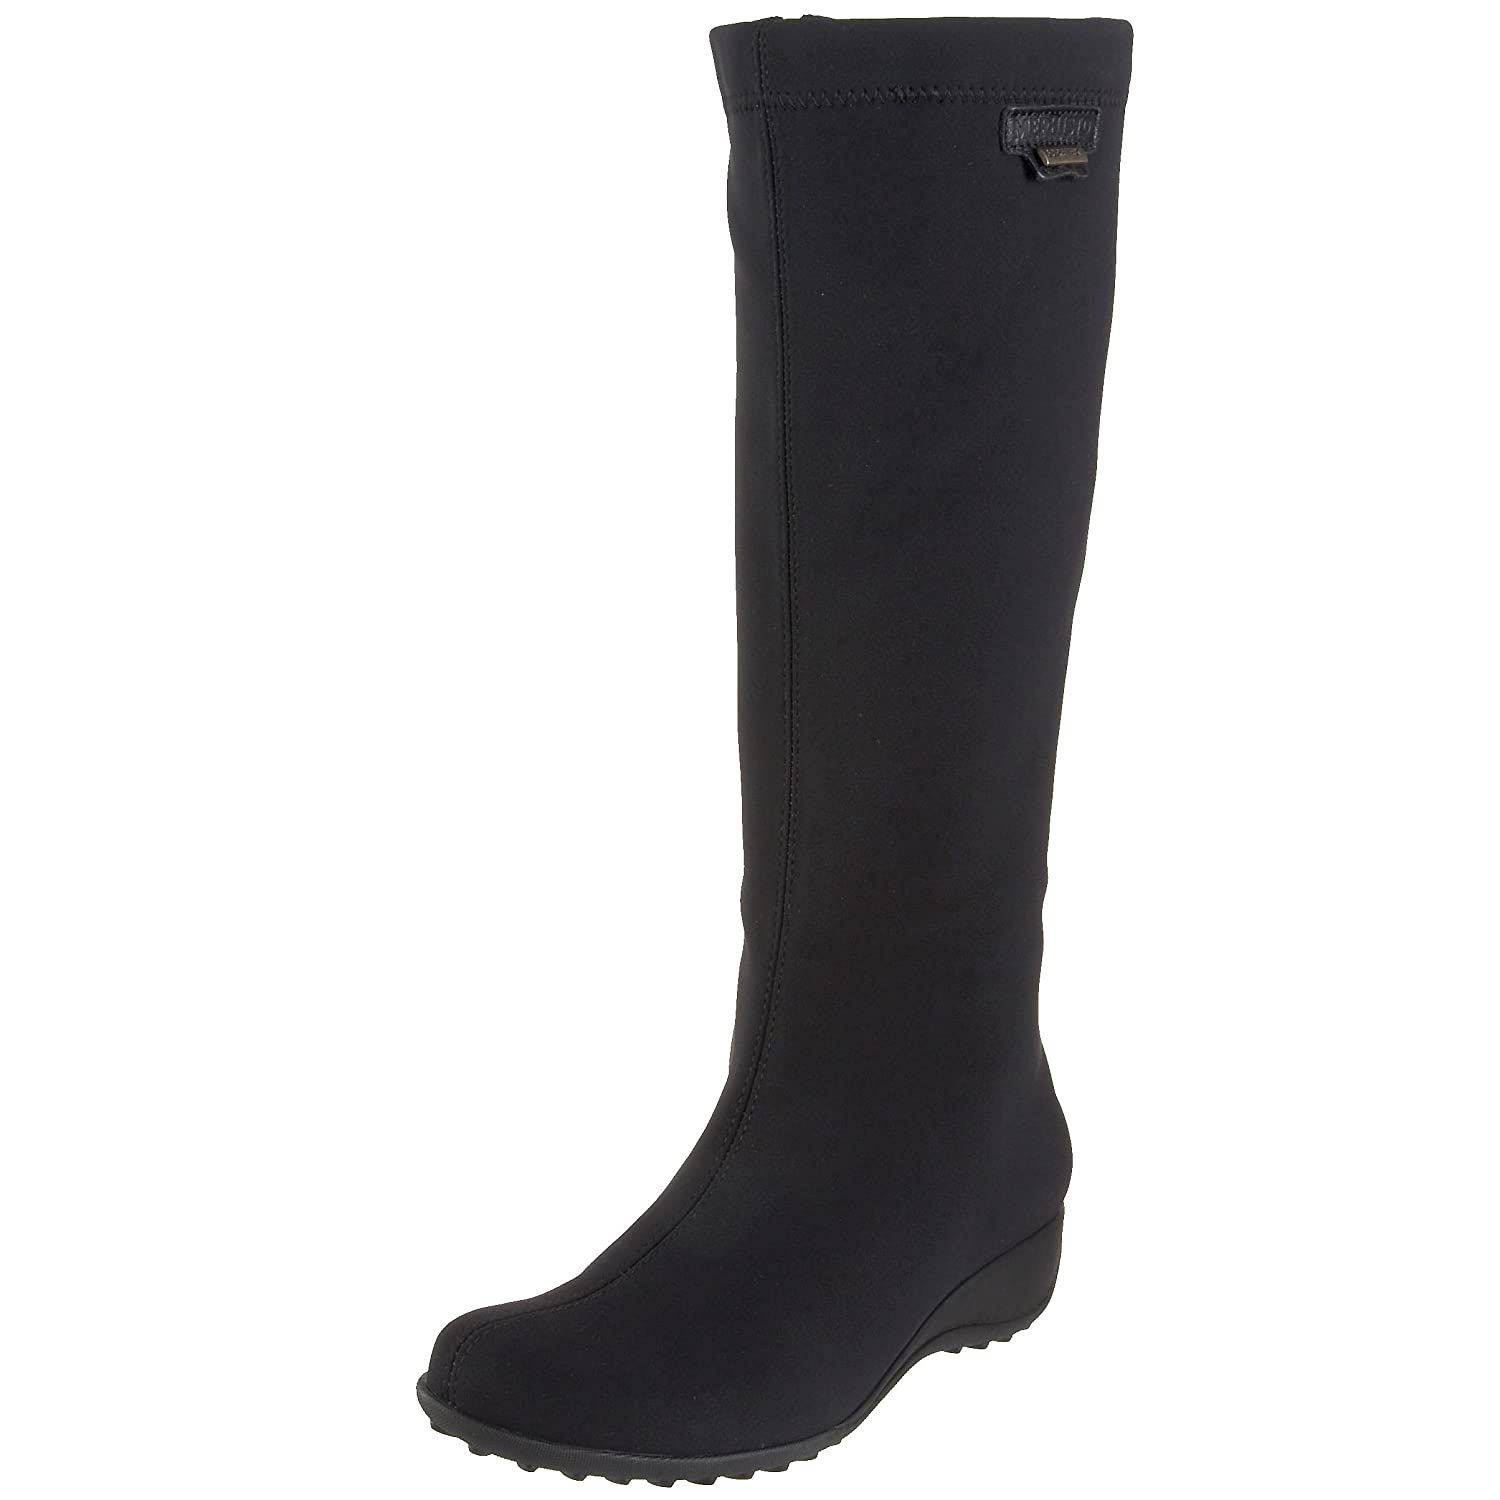 Mephisto Women's Linda Rain Boot B002VLECVY 8.5 B(M) US|Black Stretch